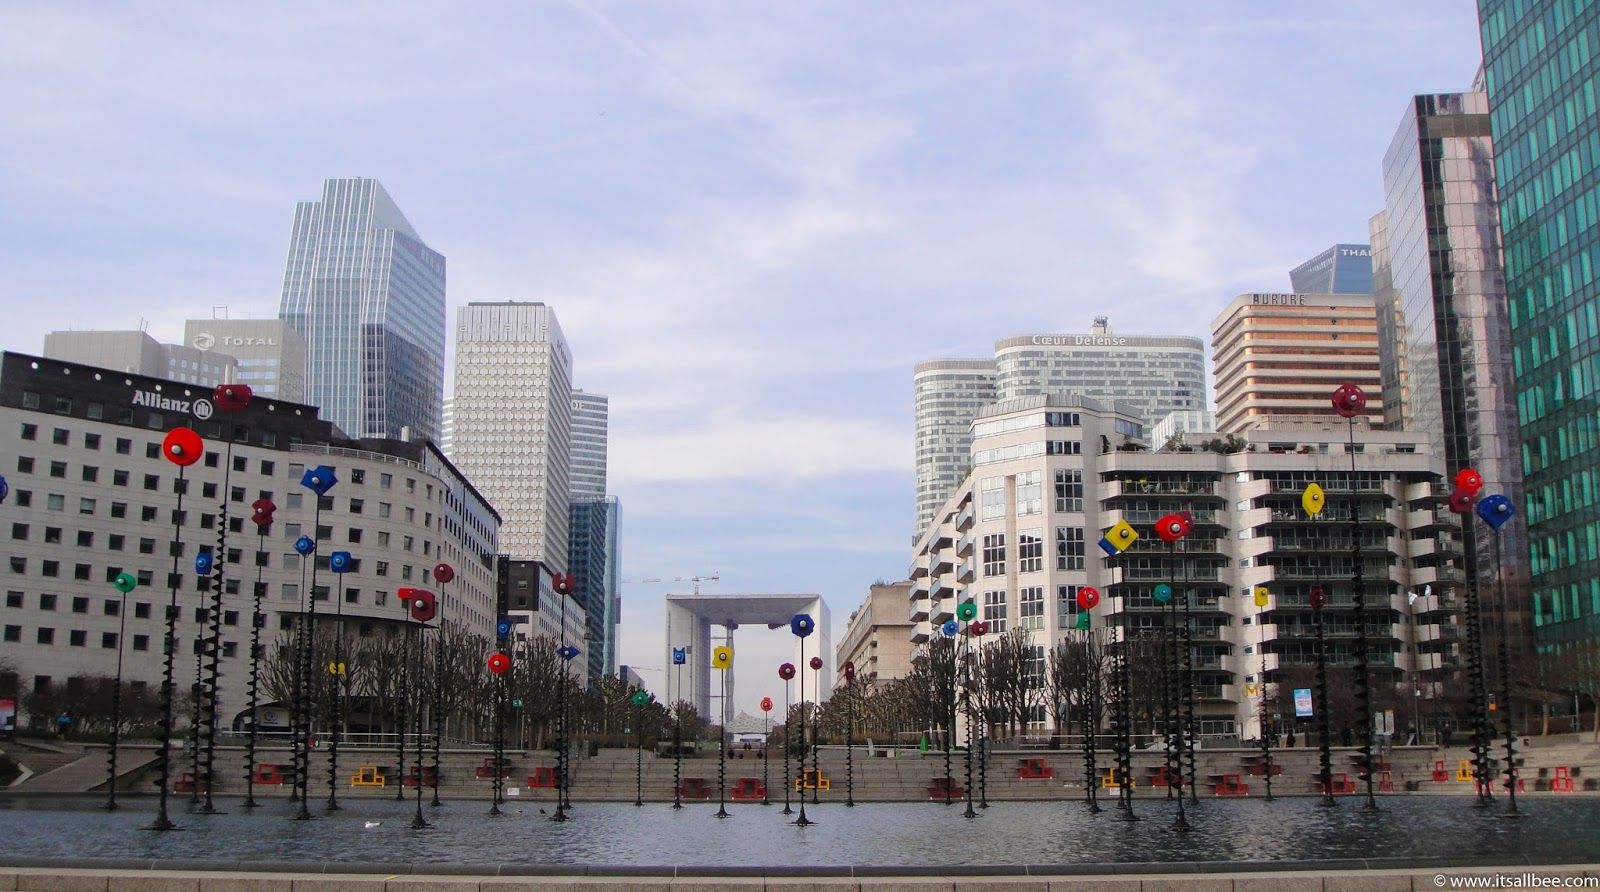 Paris | The Colours of La Defense - www.itsallbee.com